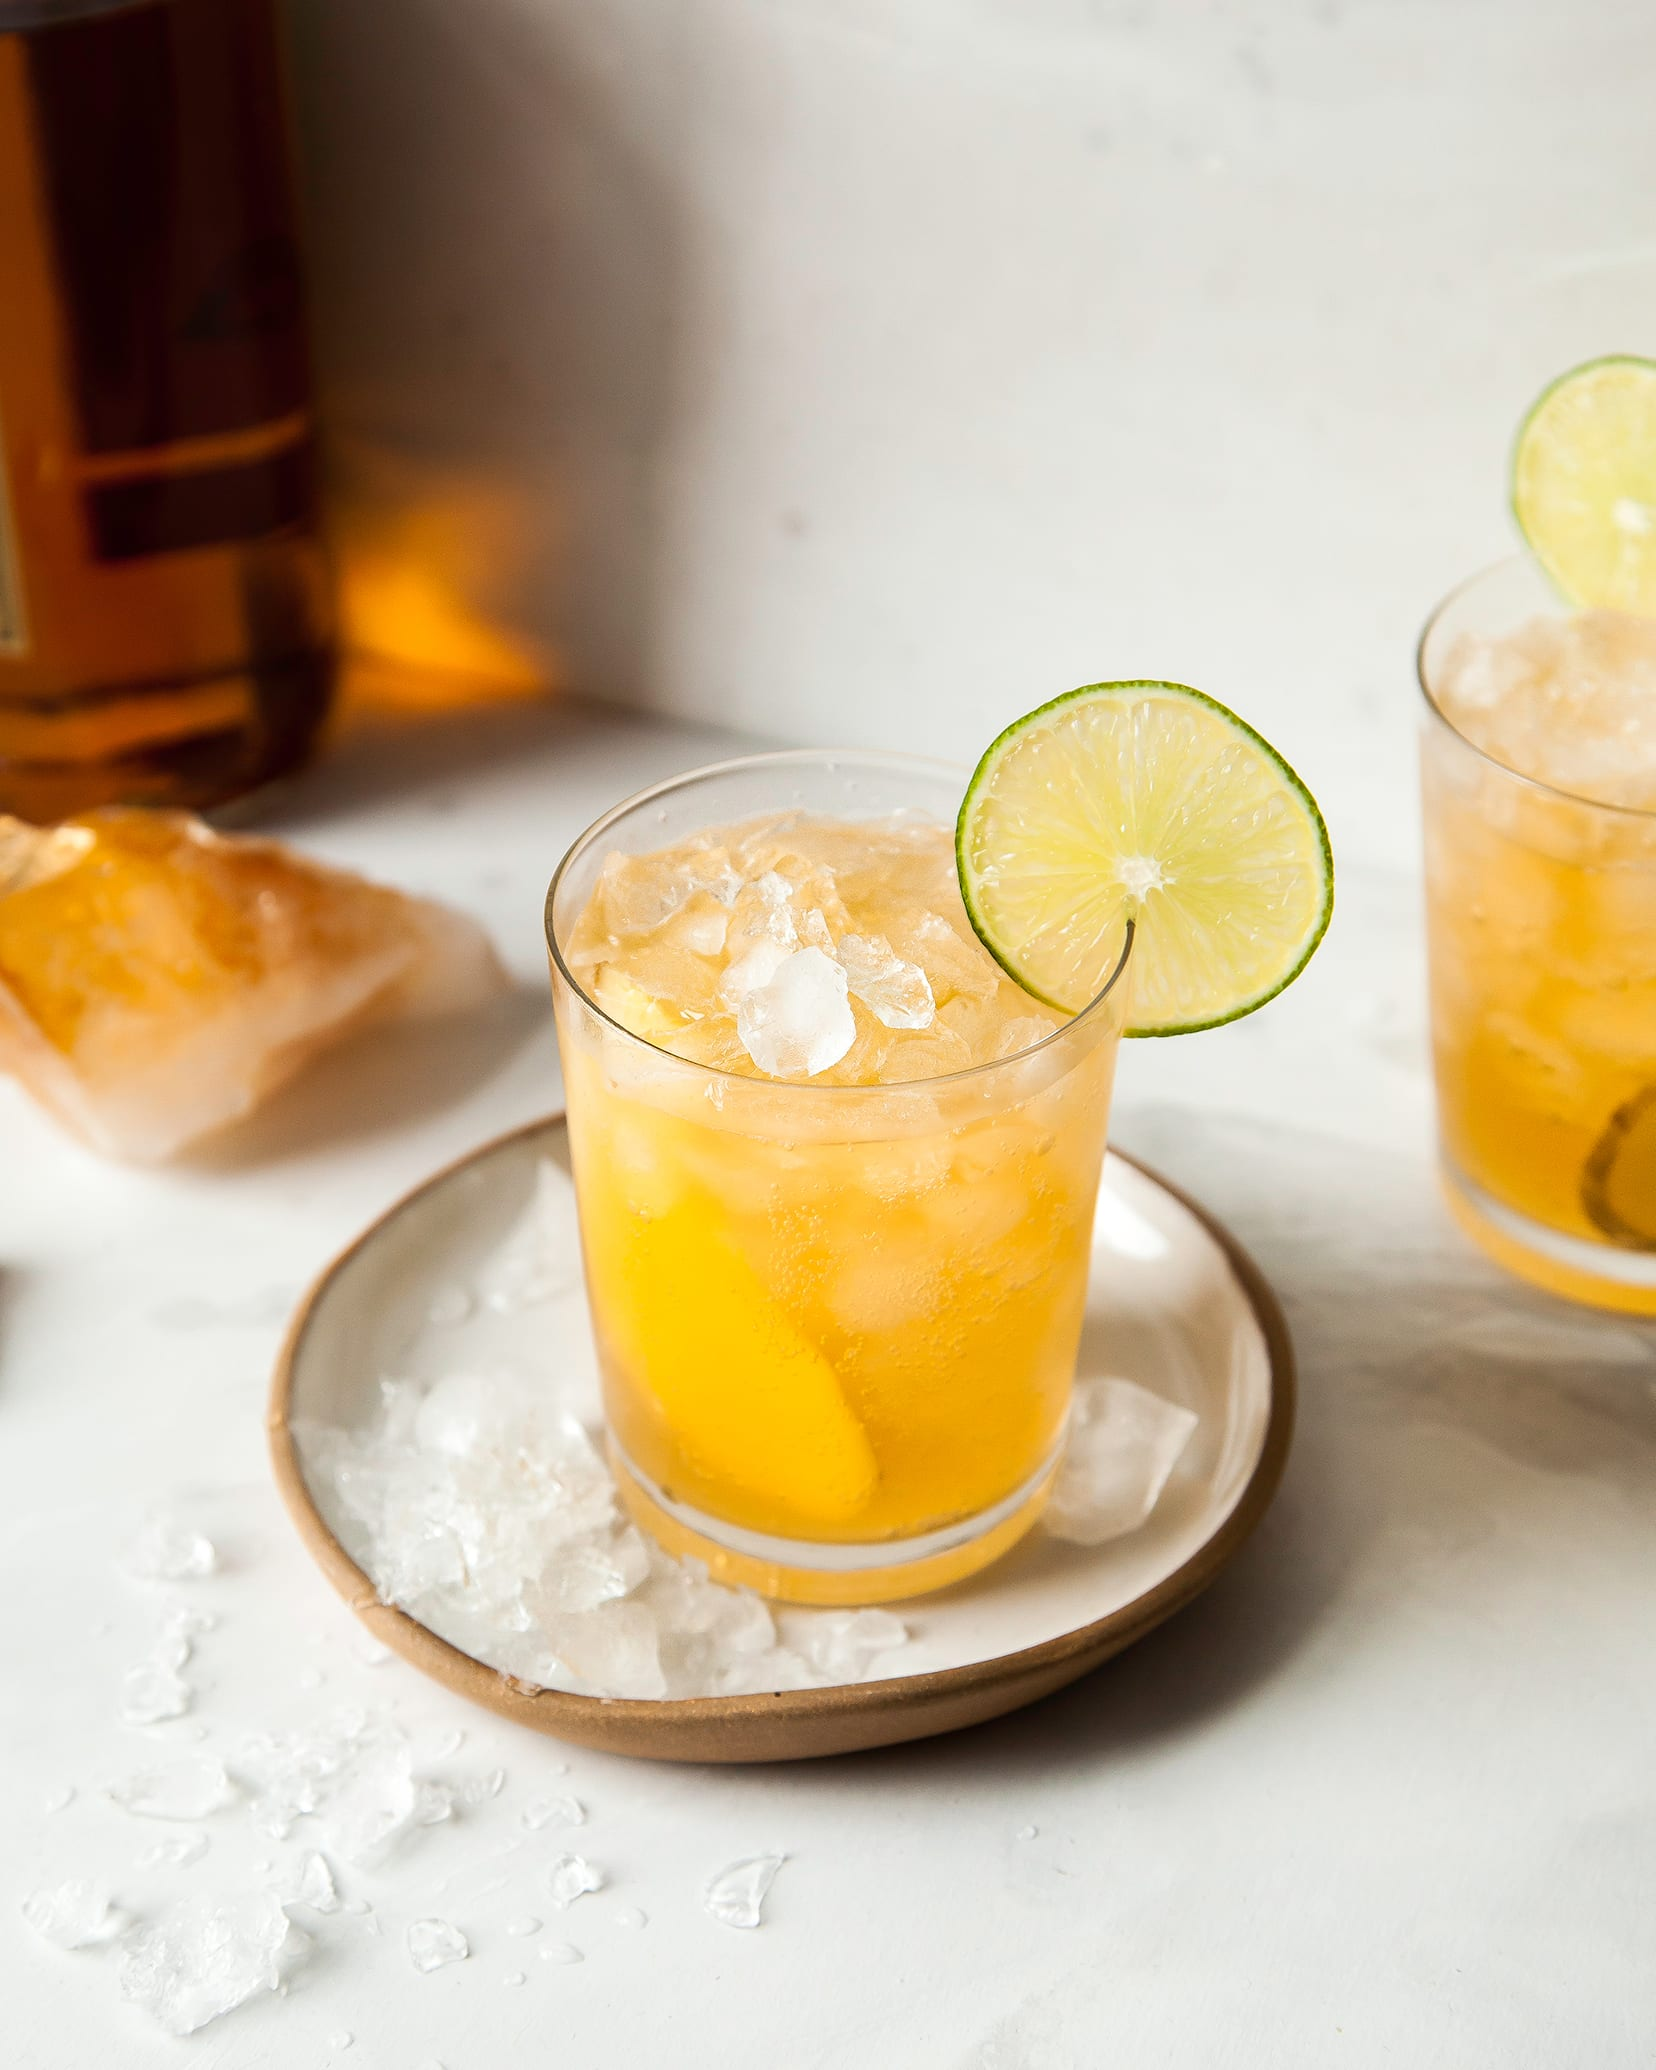 A straight-on photograph of a cold and golden beverage over crushed ice. The beverage is garnished with a wheel of lime.